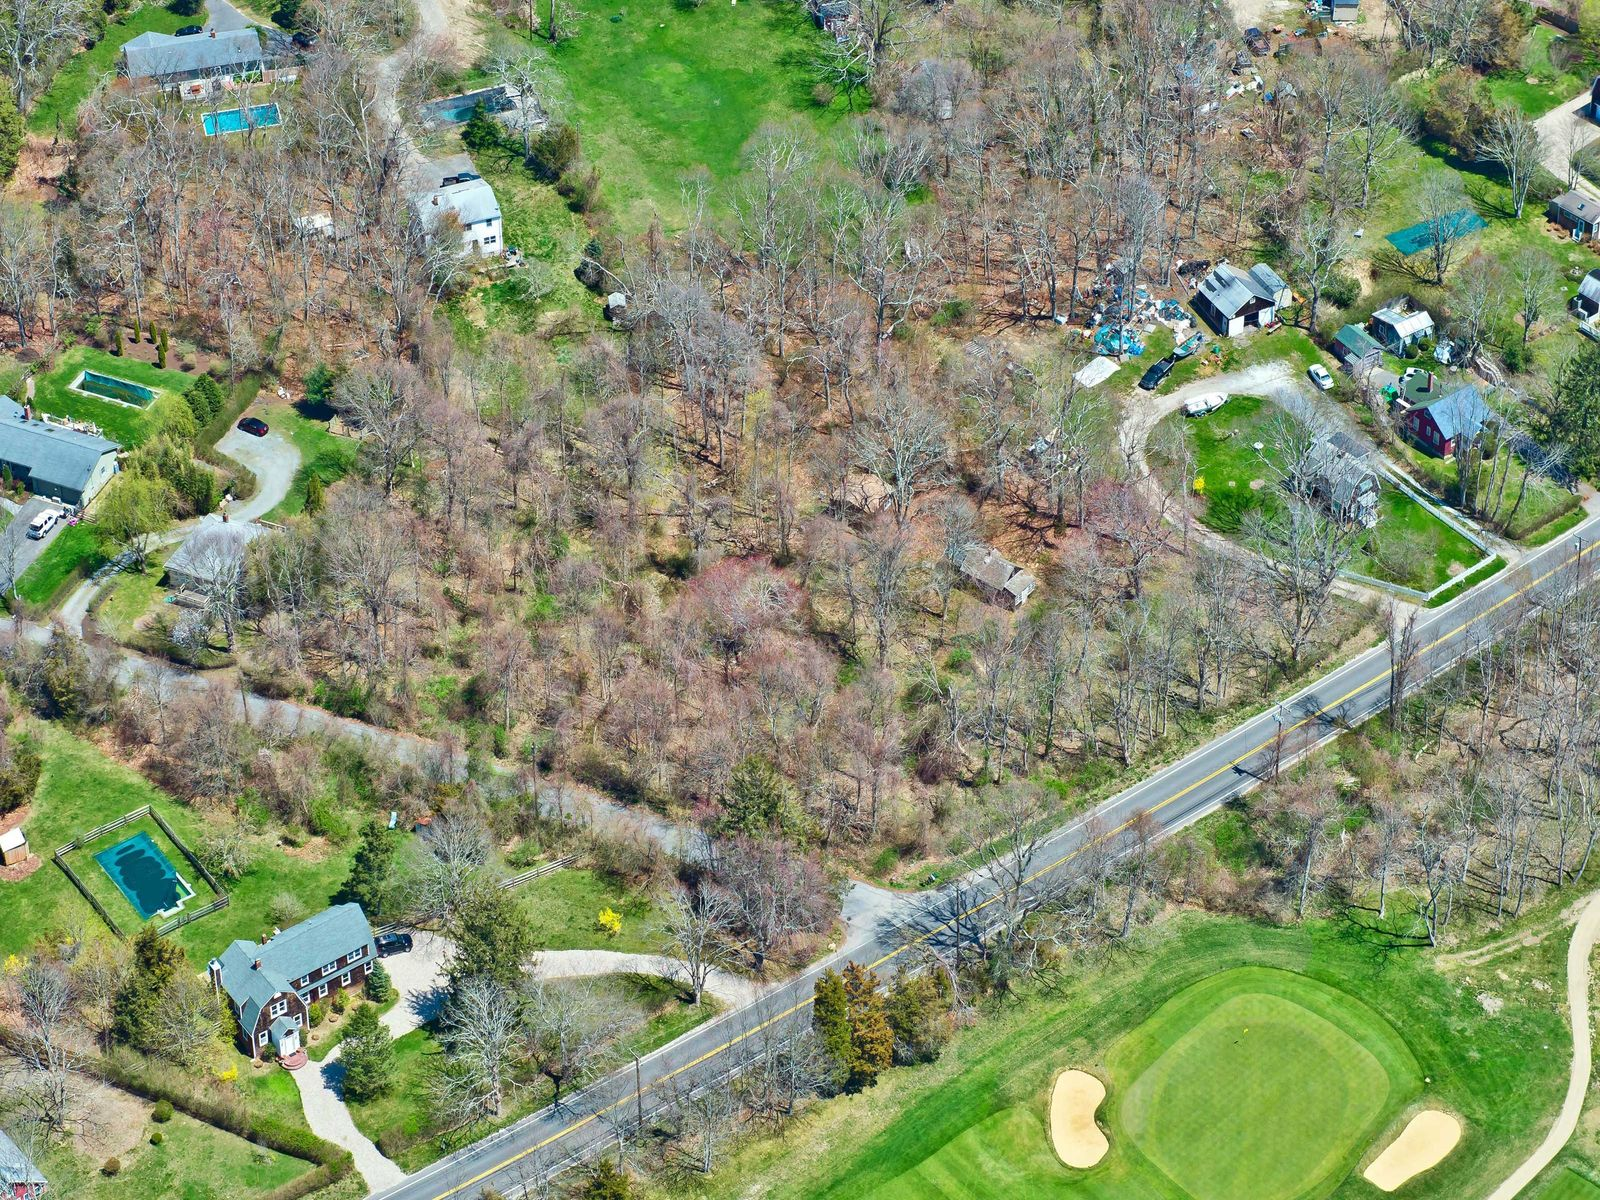 Golf Course Views from .76acres Property, Southampton NY Single Family Home - Hamptons Real Estate